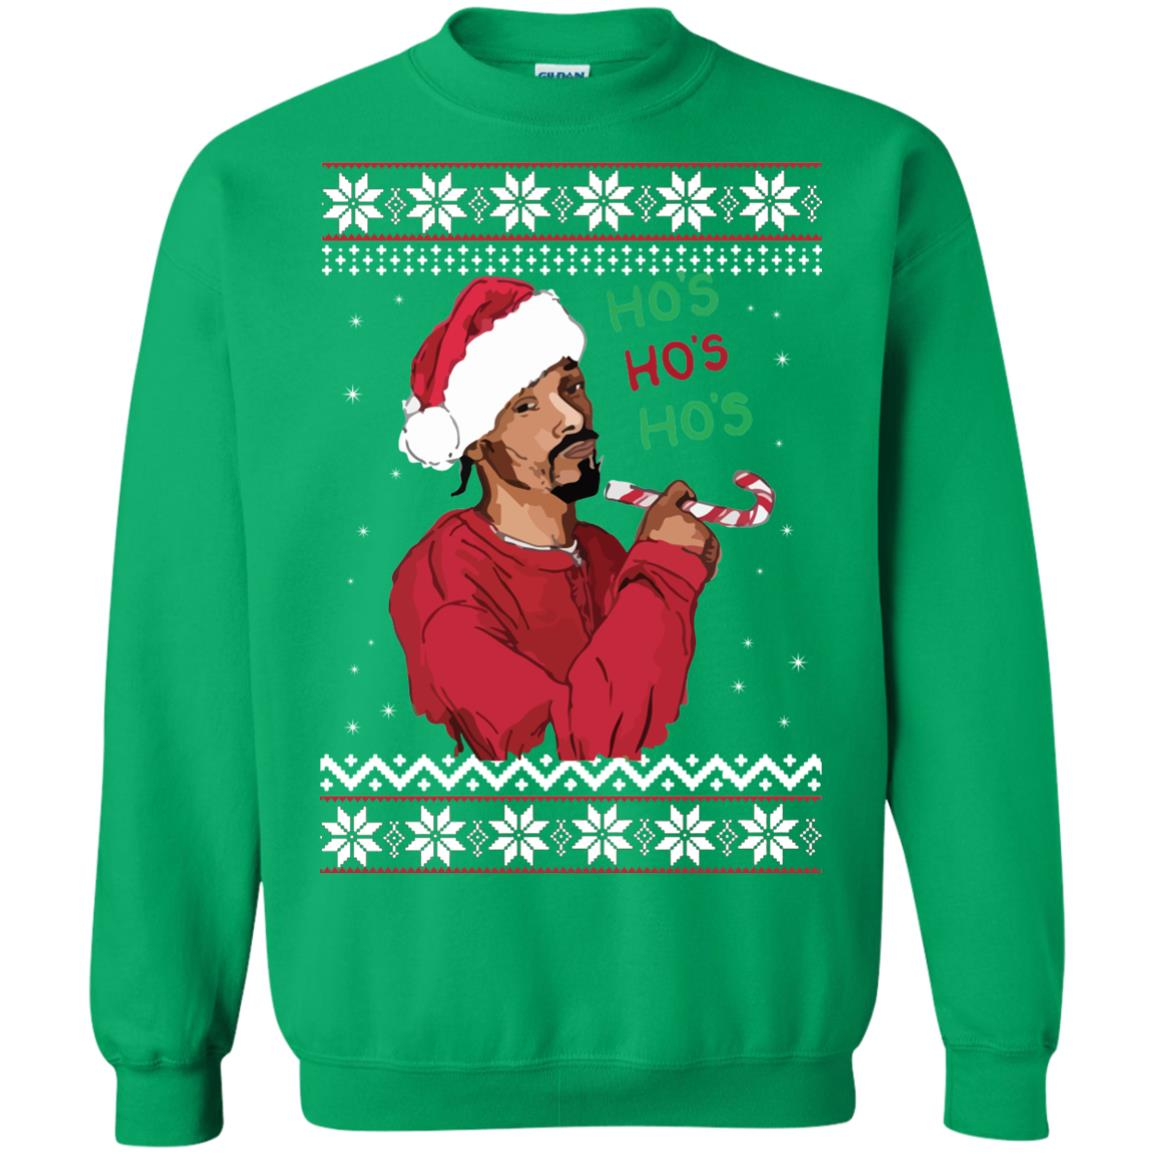 Snoop Dogg Christmas.Snoop Dogg Christmas Sweater Hoodie Long Sleeve Icestork